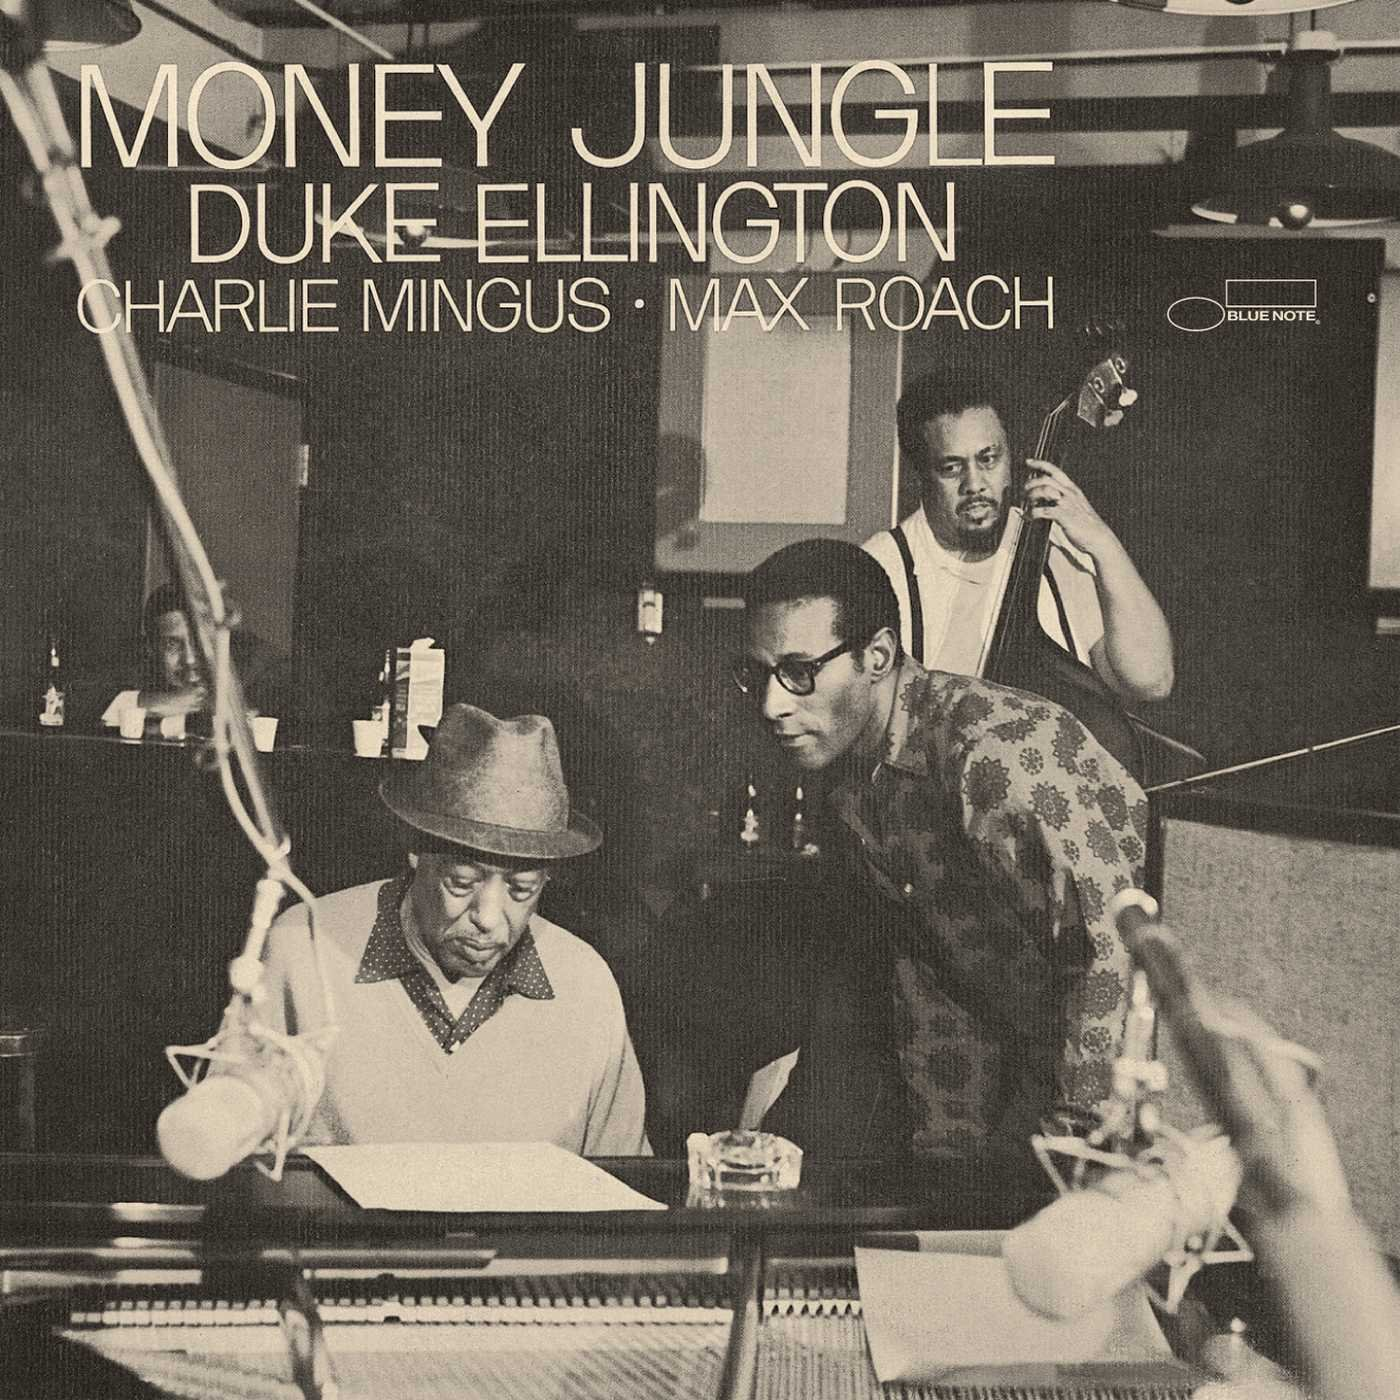 money jungle by duke ellington charlie mingus max roach  money jungle by duke ellington charlie mingus max roach co uk music